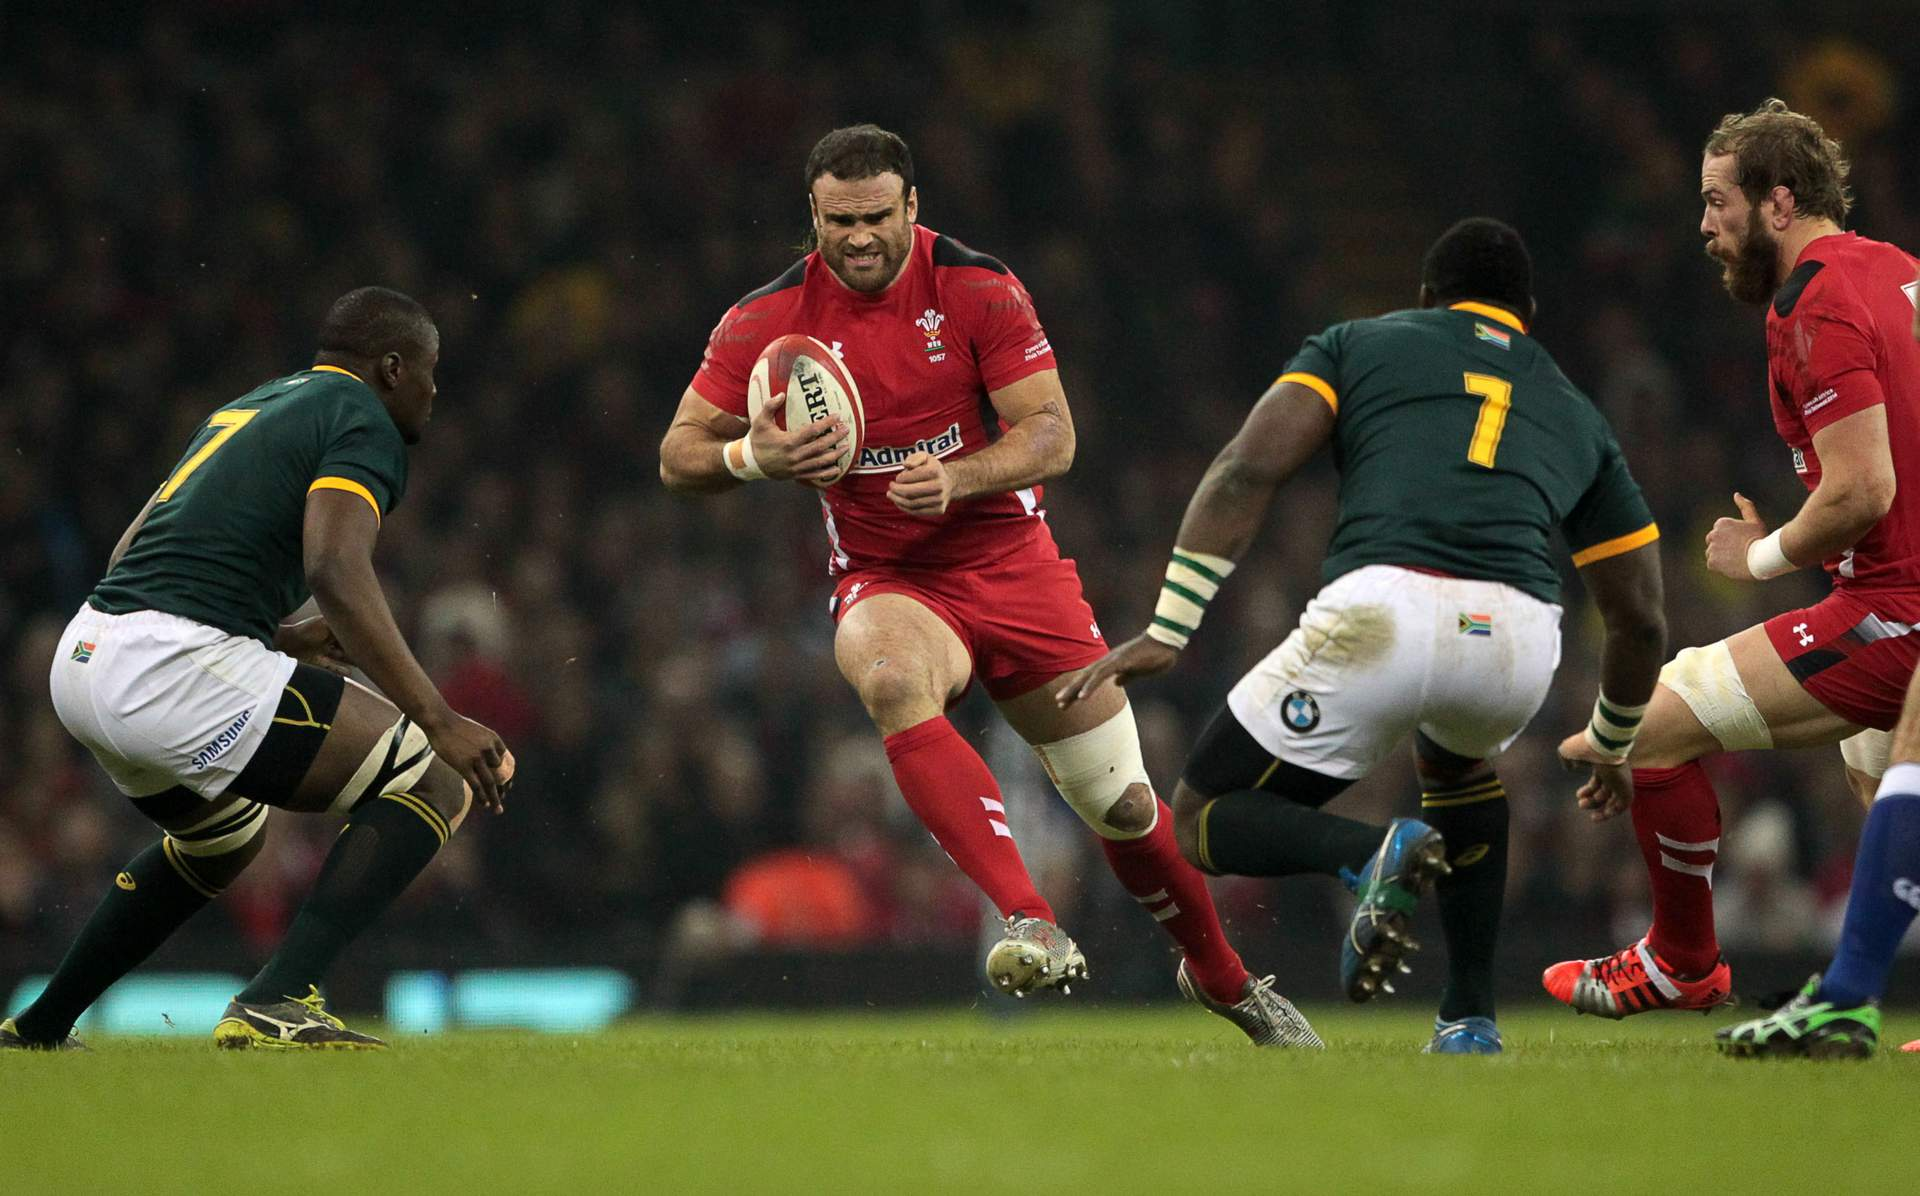 The Under Armour Series 2016: Wales v South Africa